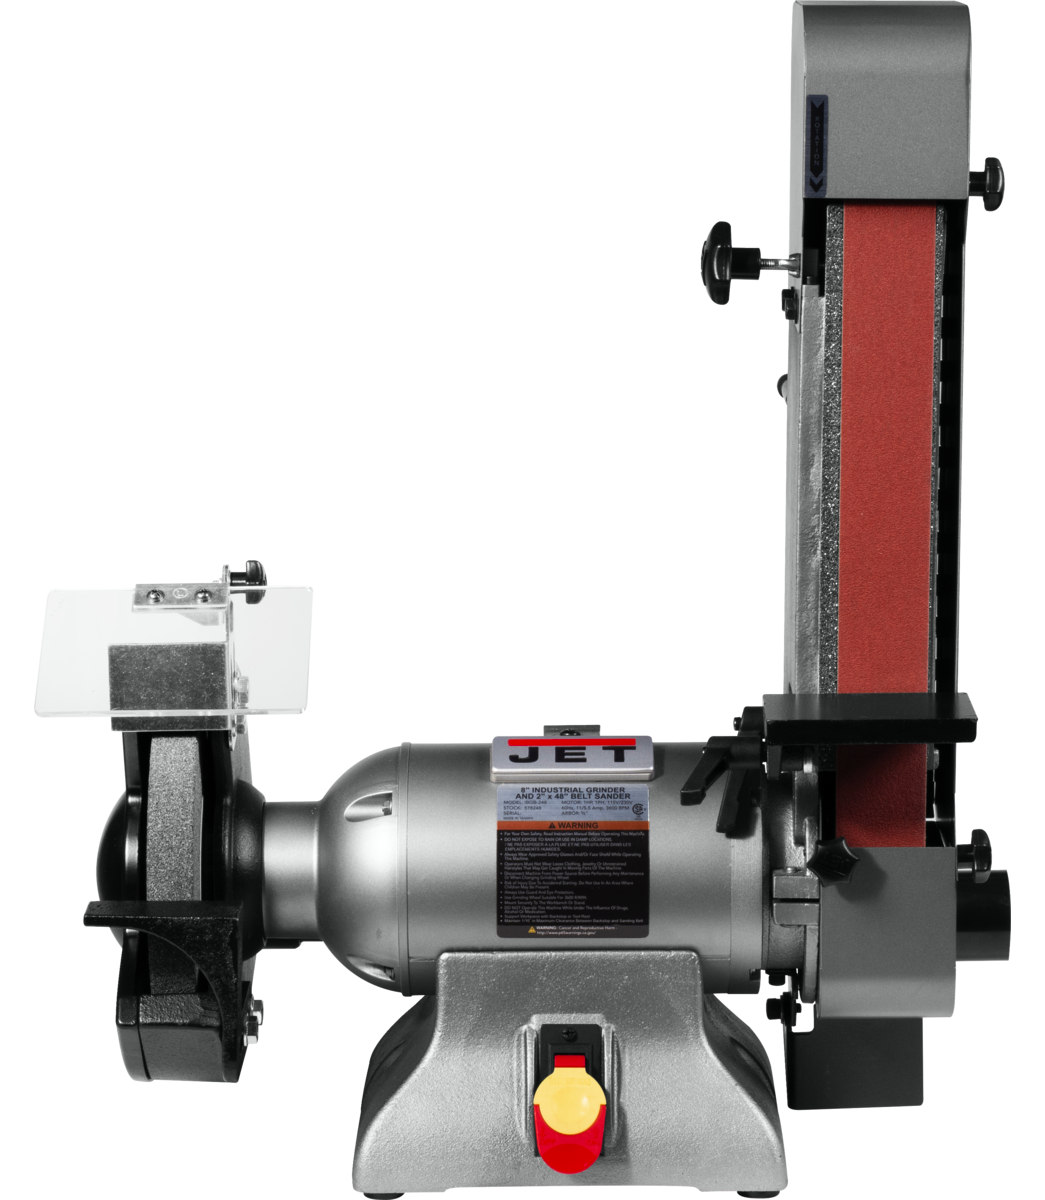 IBGB-248 8-Inch Industrial Grinder and  2 x 48 Belt Sander